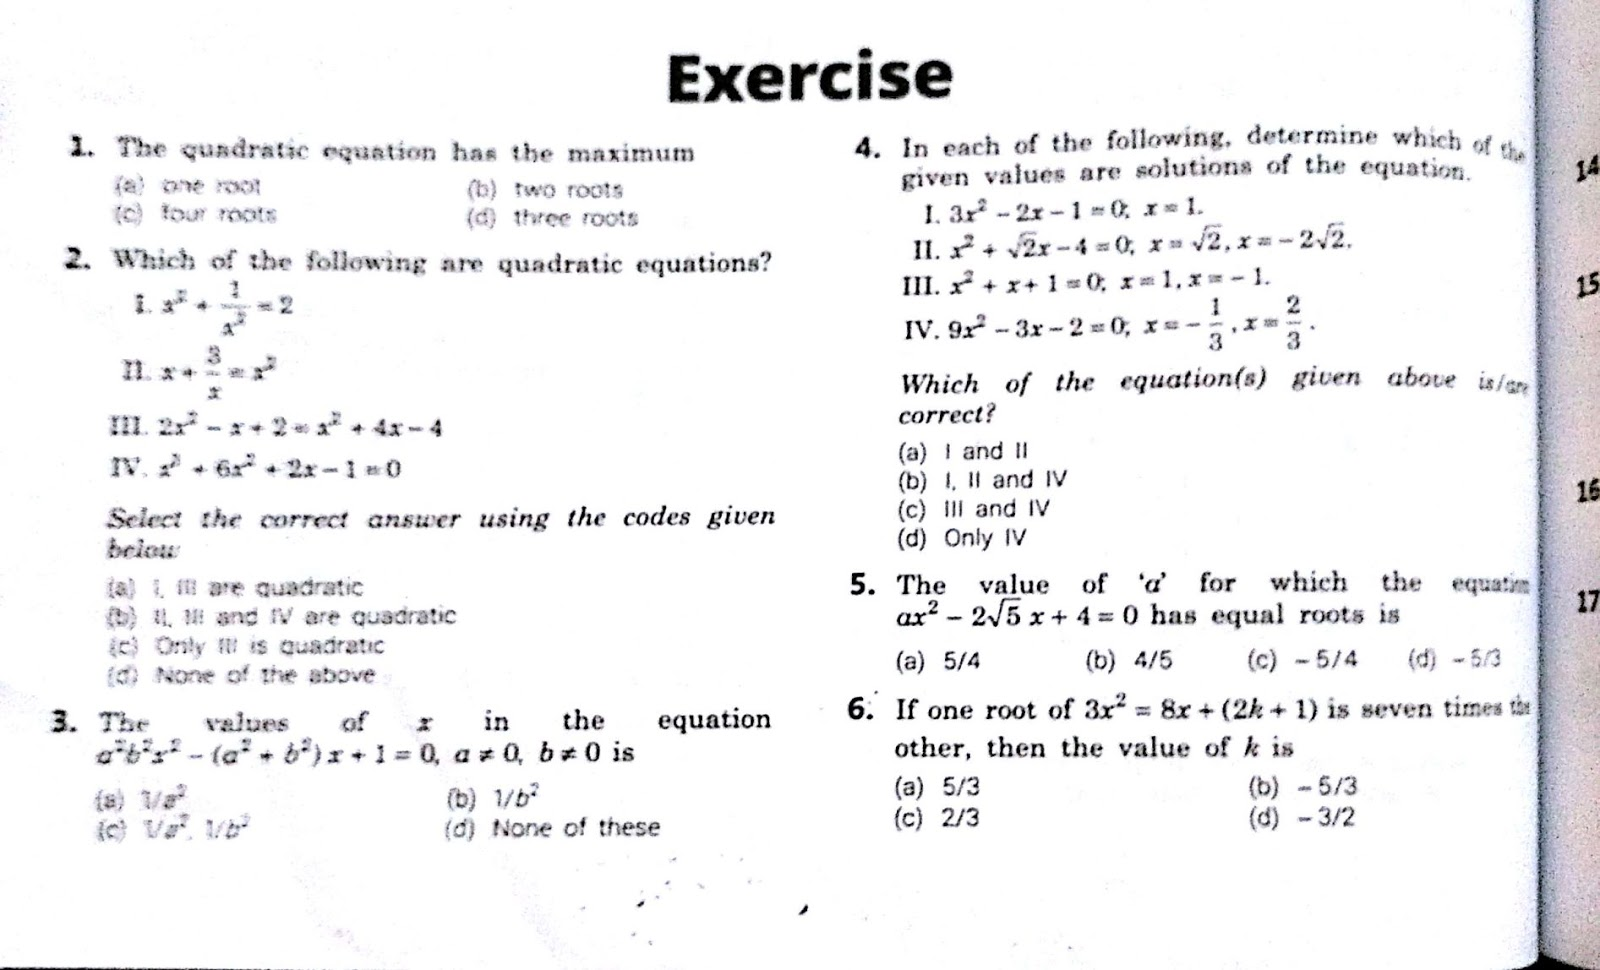 Quadratic Equation Exercise 4 1